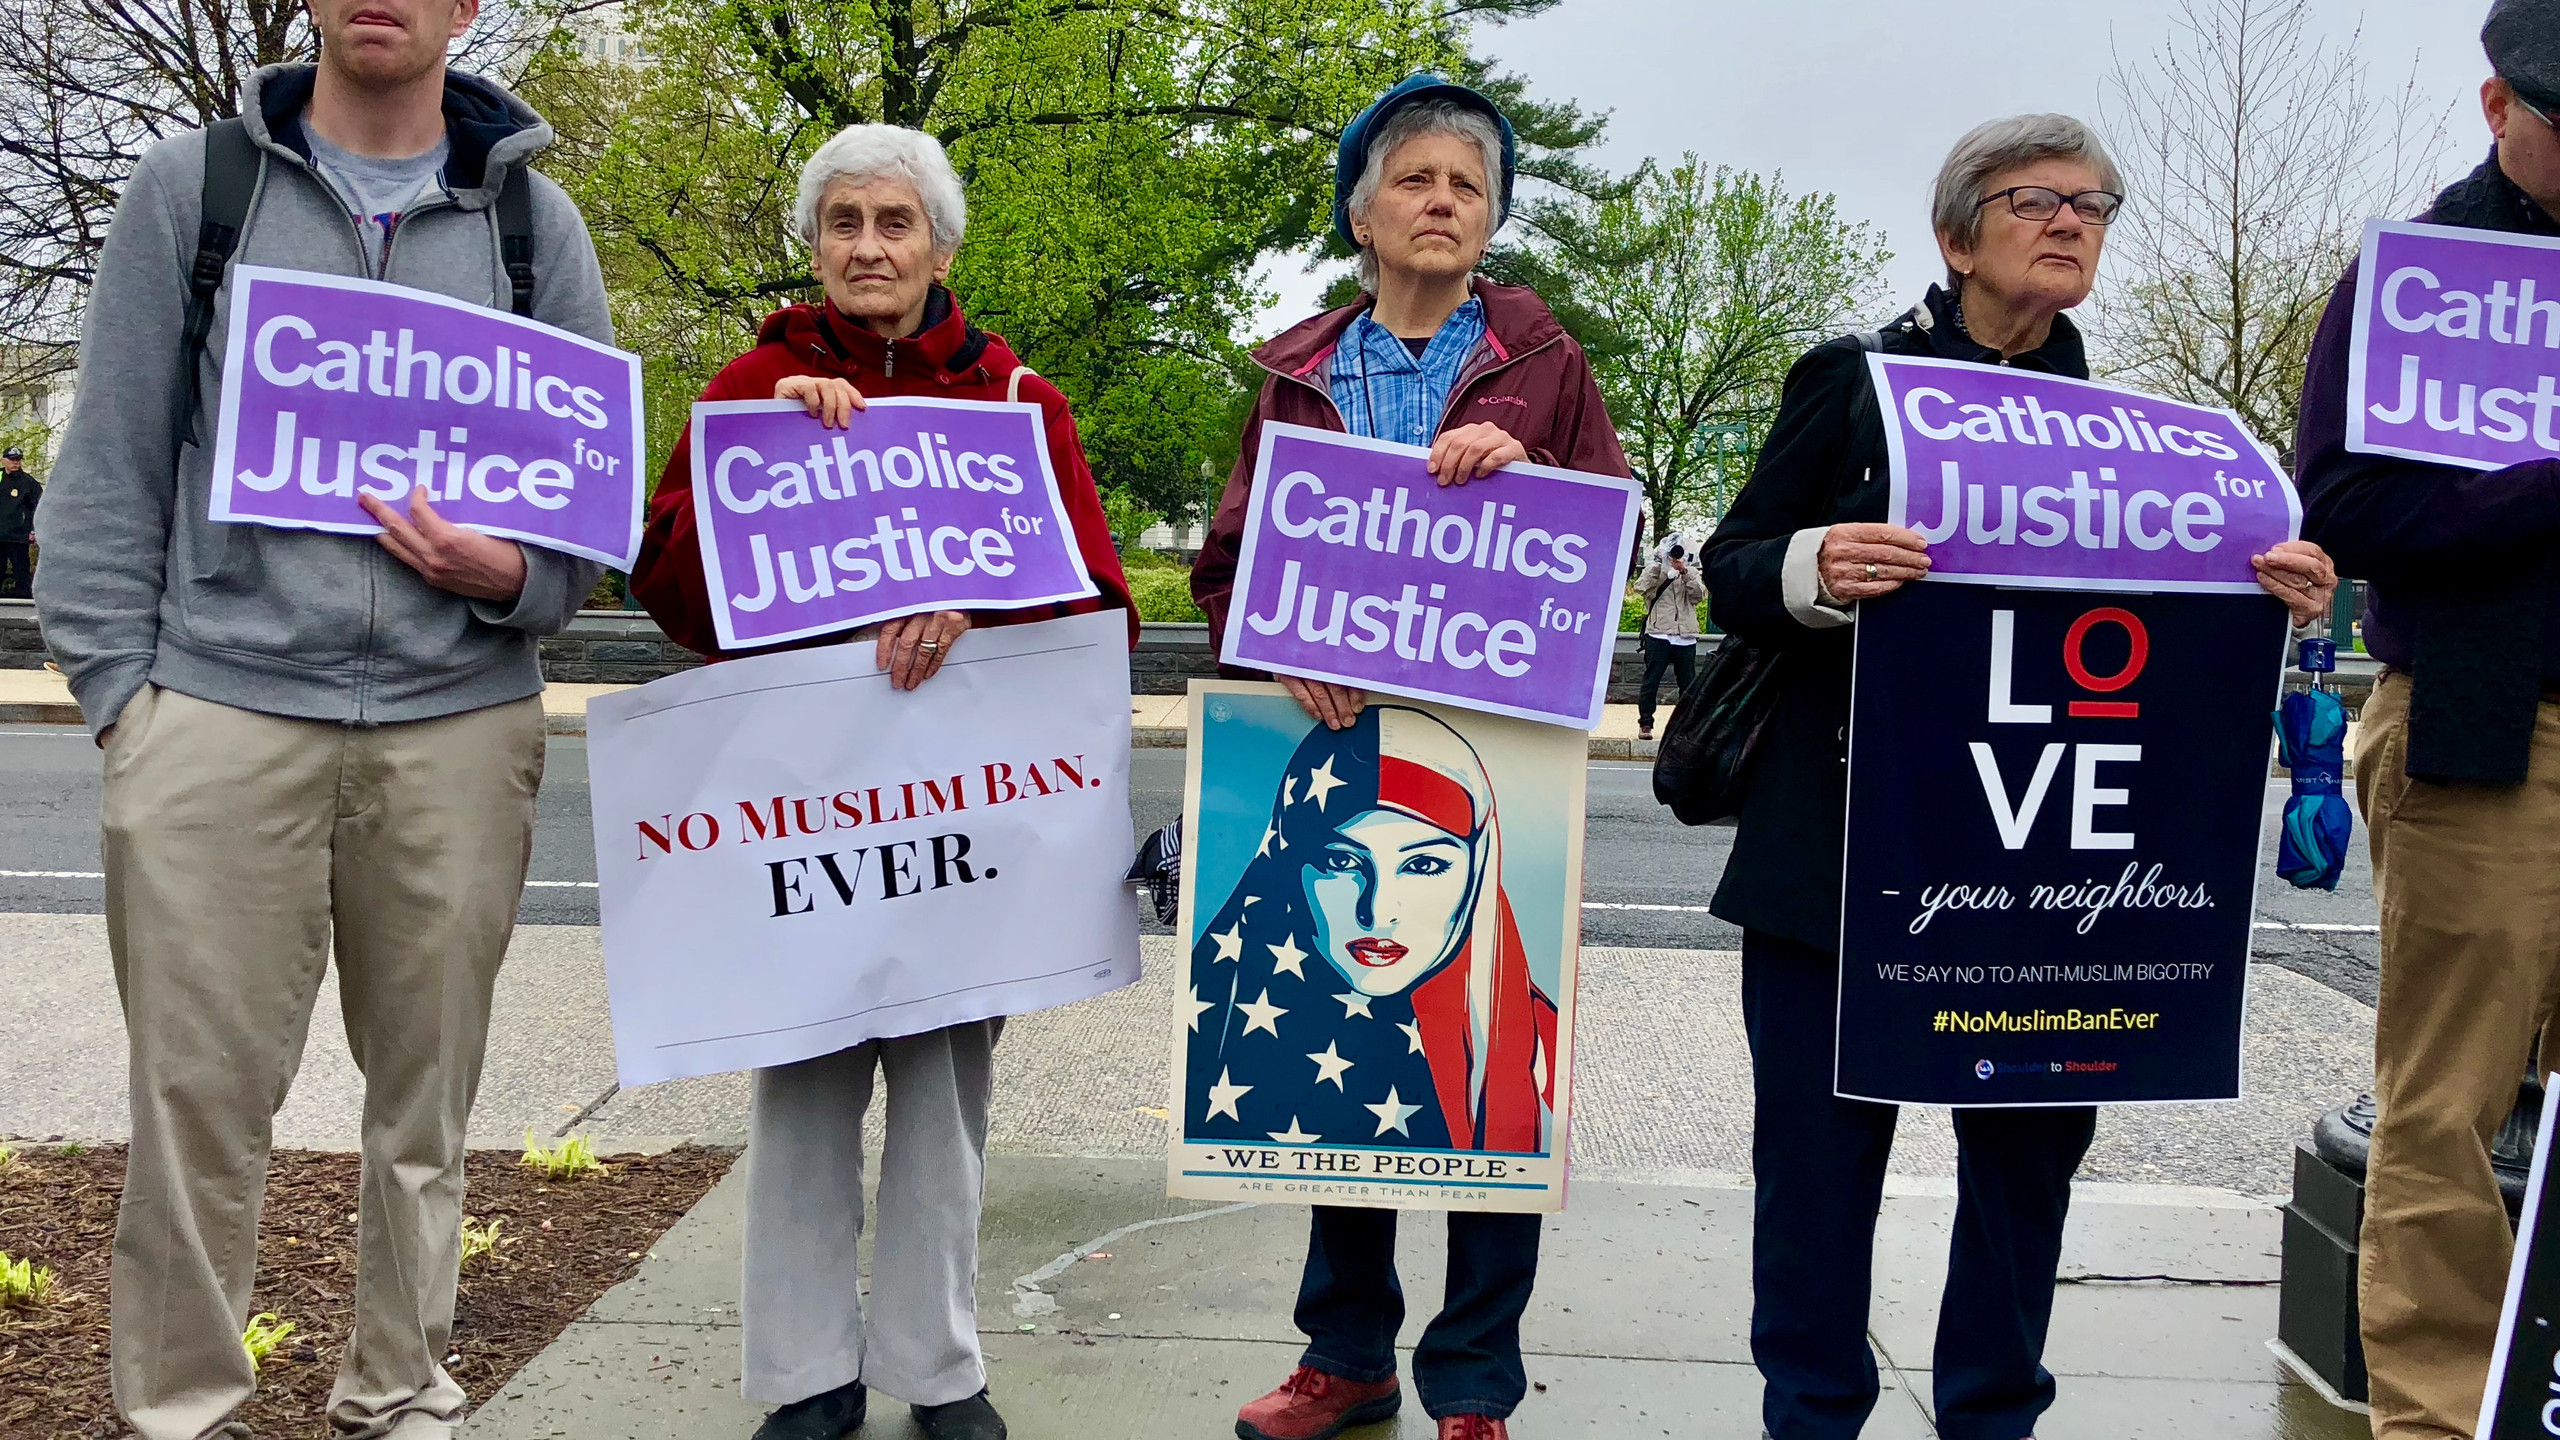 Catholics for Justice Activists